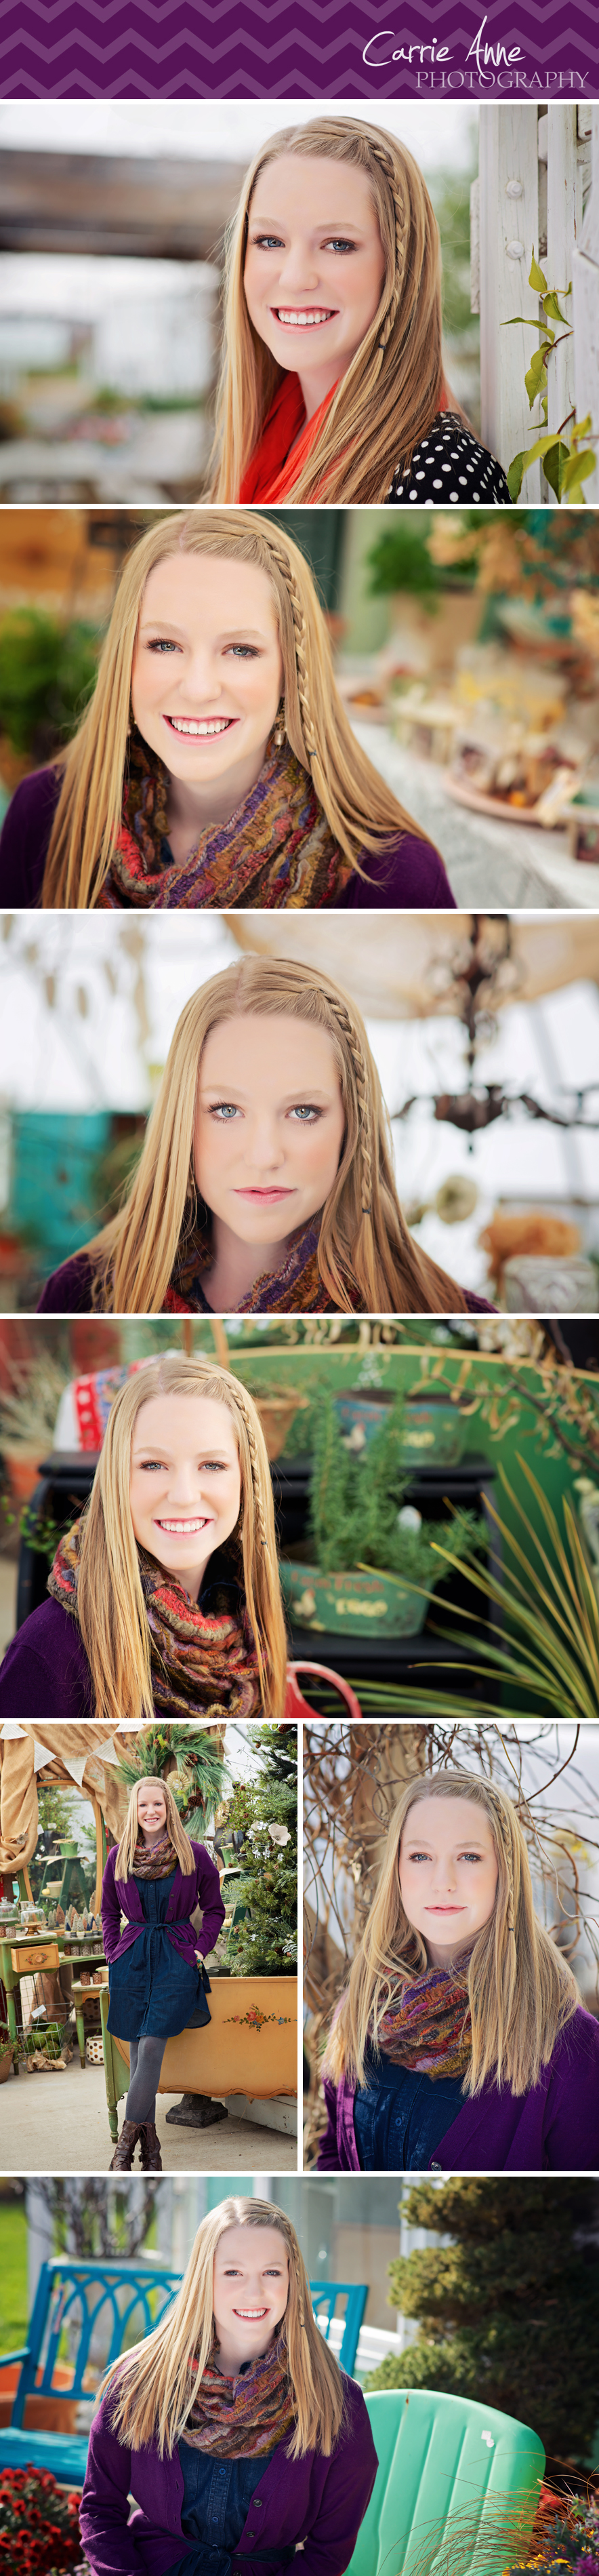 Senior Portrait Photography Carrie Anne Photography in Grand Rapids, Michigan